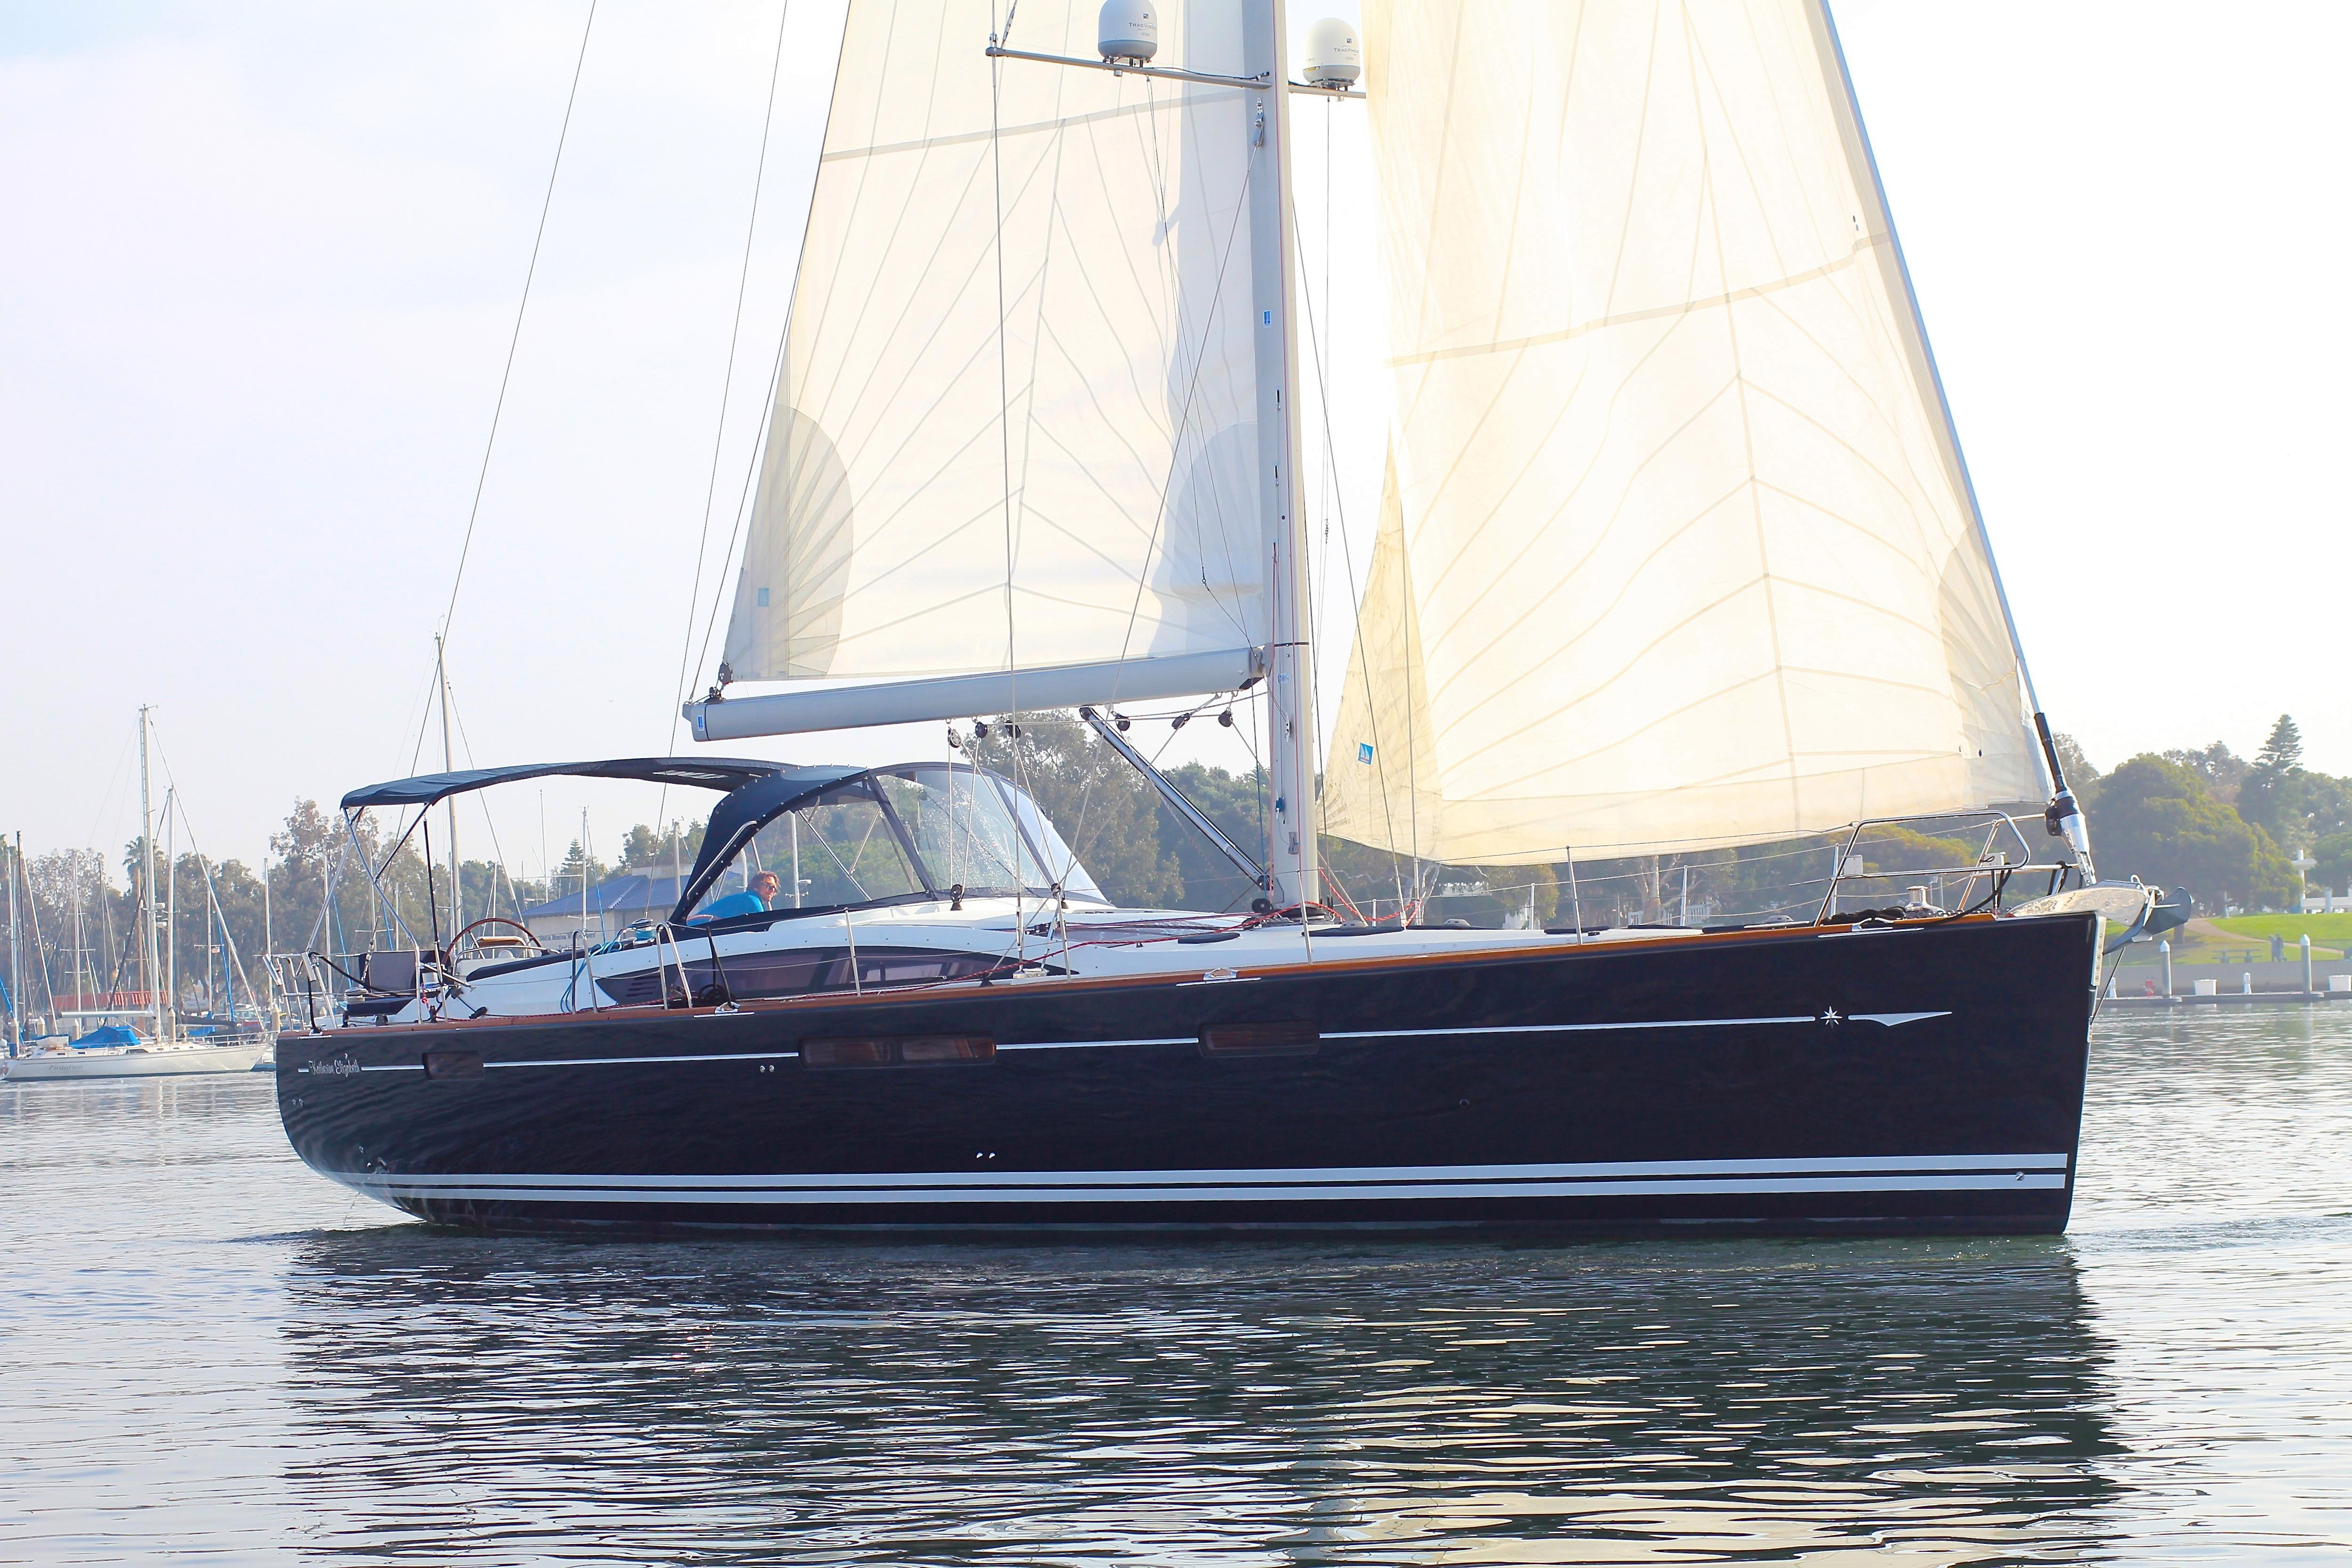 Used Jeanneau 57 Yacht Sloop Sailboat For Sale